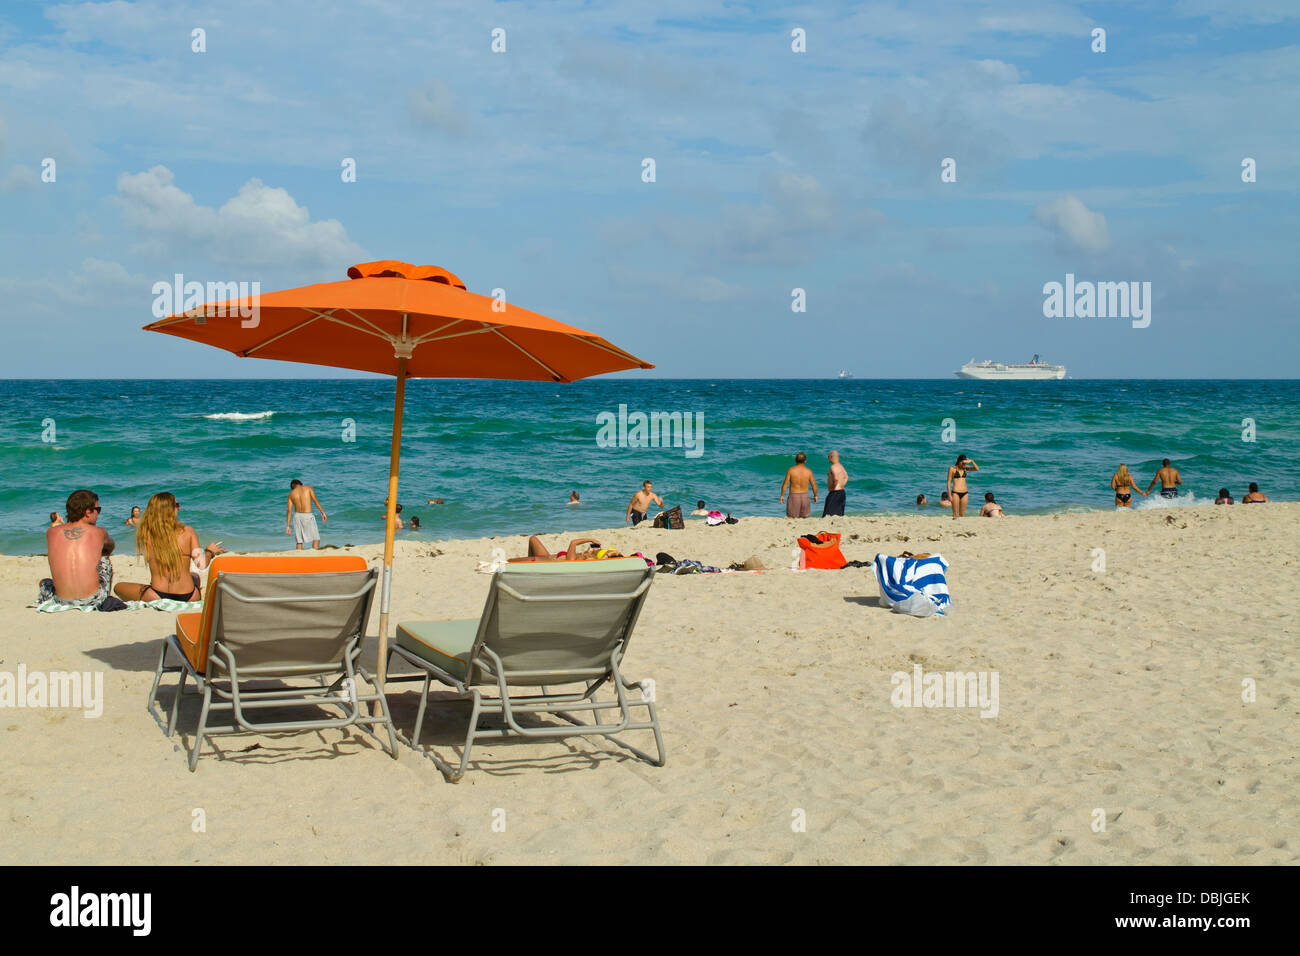 Nice Beach Chairs, Orange Sun Umbrella And Many Happy Beach Goers At South Beach,  Miami Florida. A Cruise Ship Is In The Distance.